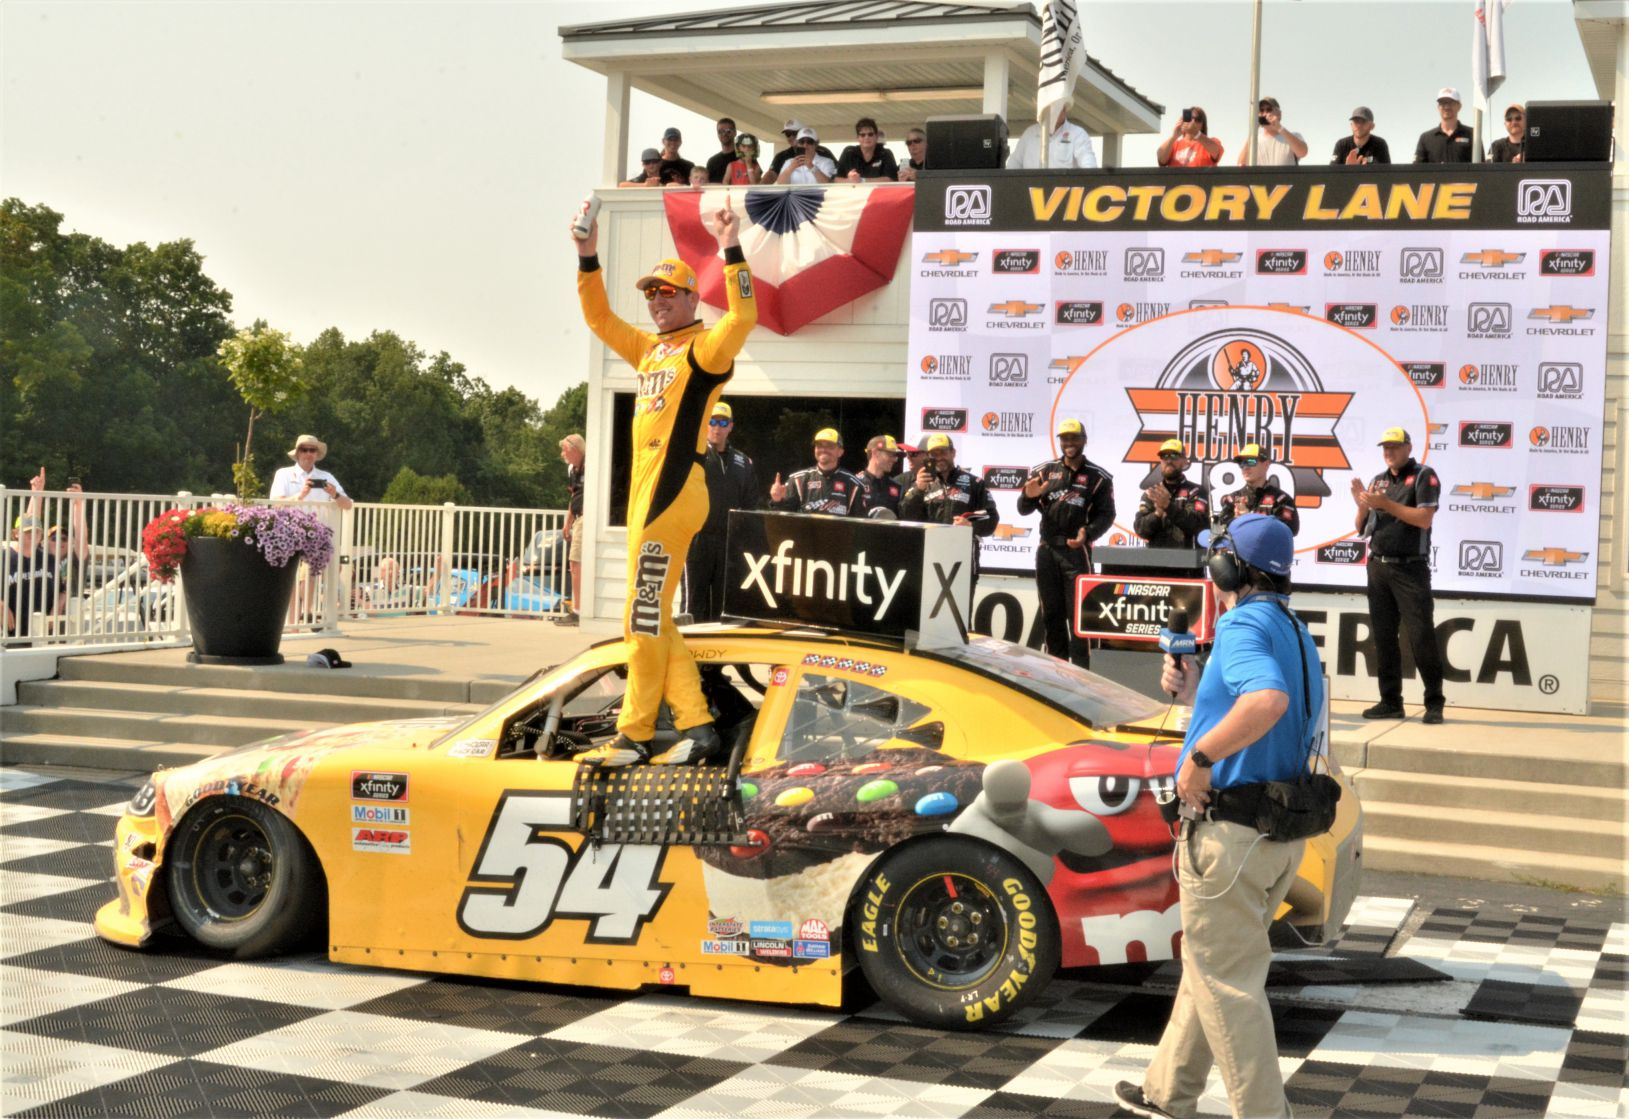 """#54 Kyle Busch - - M&M Ice Cream (Toyota Supra) winner of 12th annual HENRY """"180"""" Nascar Xfinity Series -Road America on 7/3/21. Kyle does a little celebrating on door of car. [Dave Jensen Photo]"""